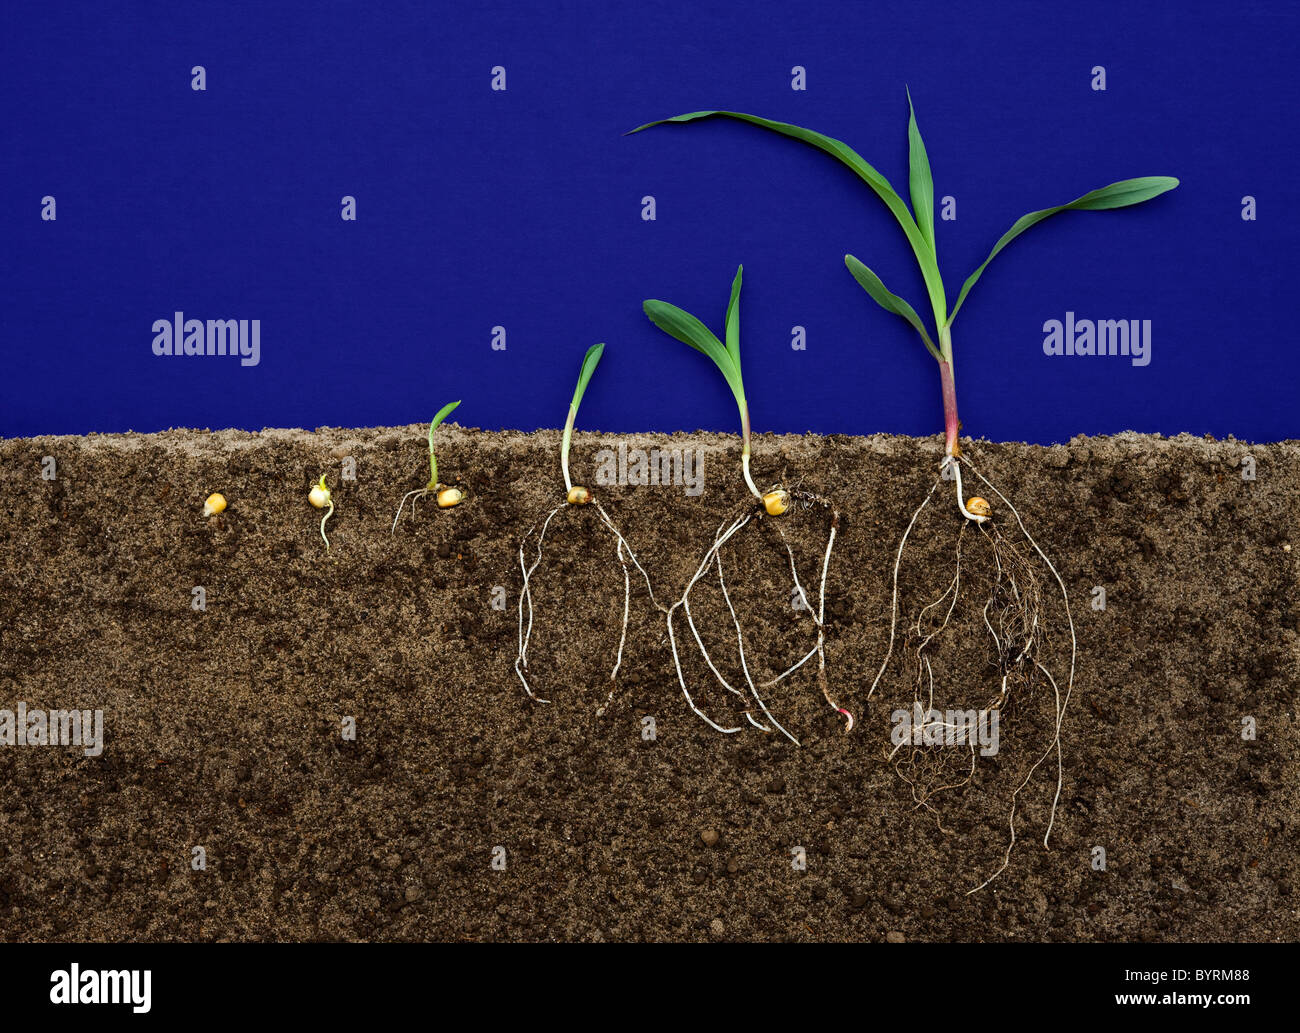 corn plant life cycle diagram 8n ford wiring different stages of pictures to pin on pinterest